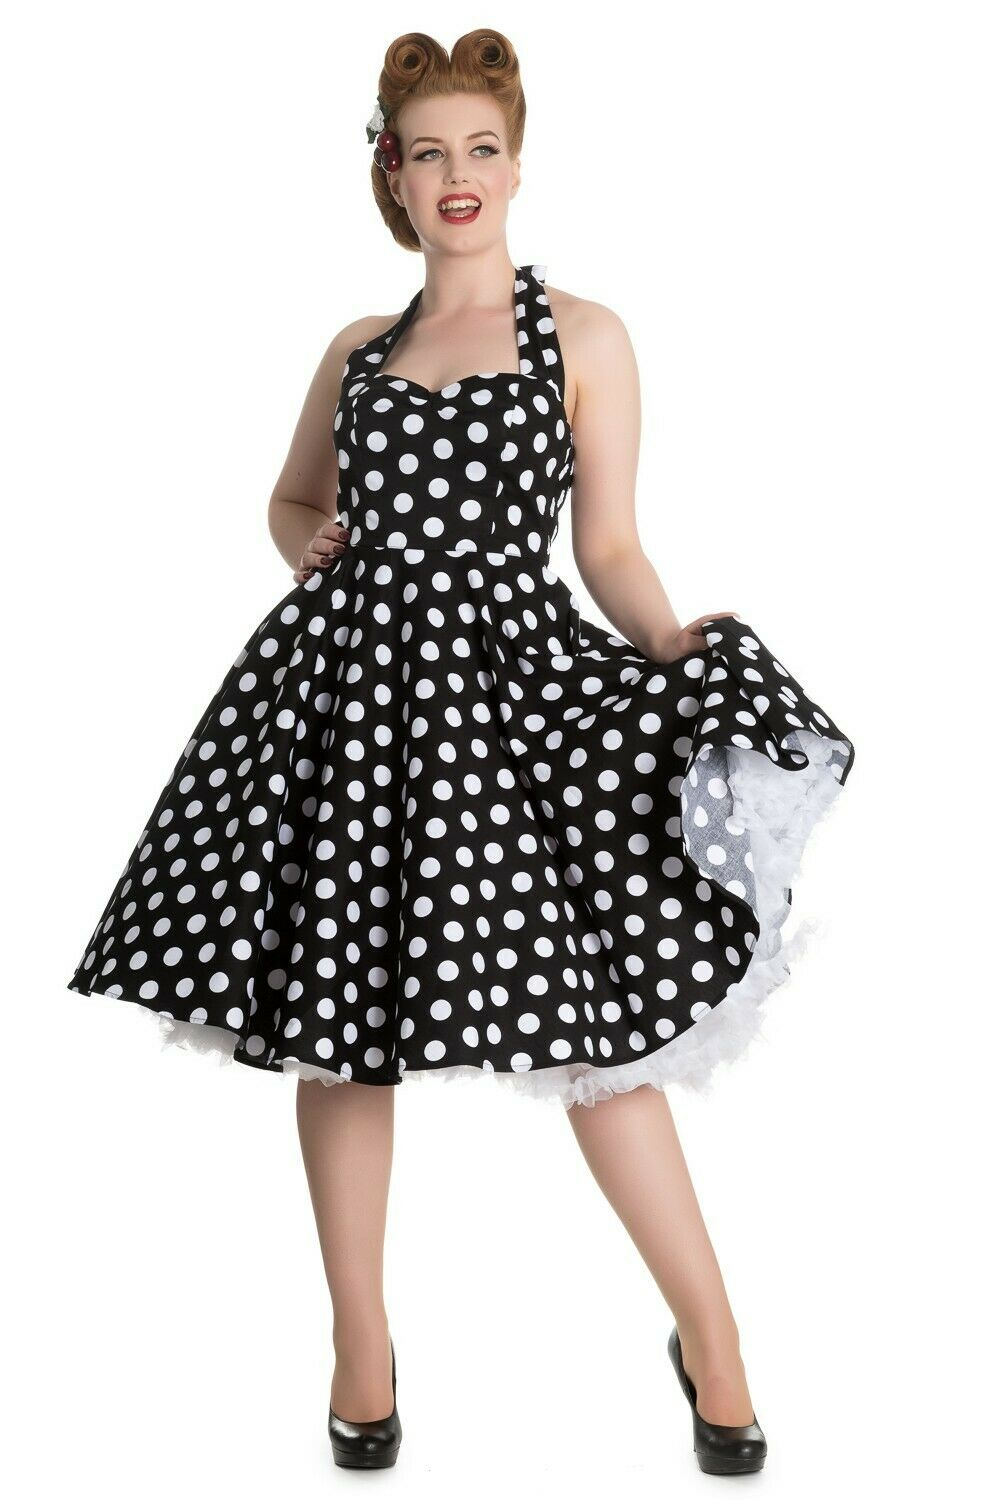 Hell Bunny Mariam Années 50er Polka Dots Swing Jupon Robe Rockabilly PIN UP